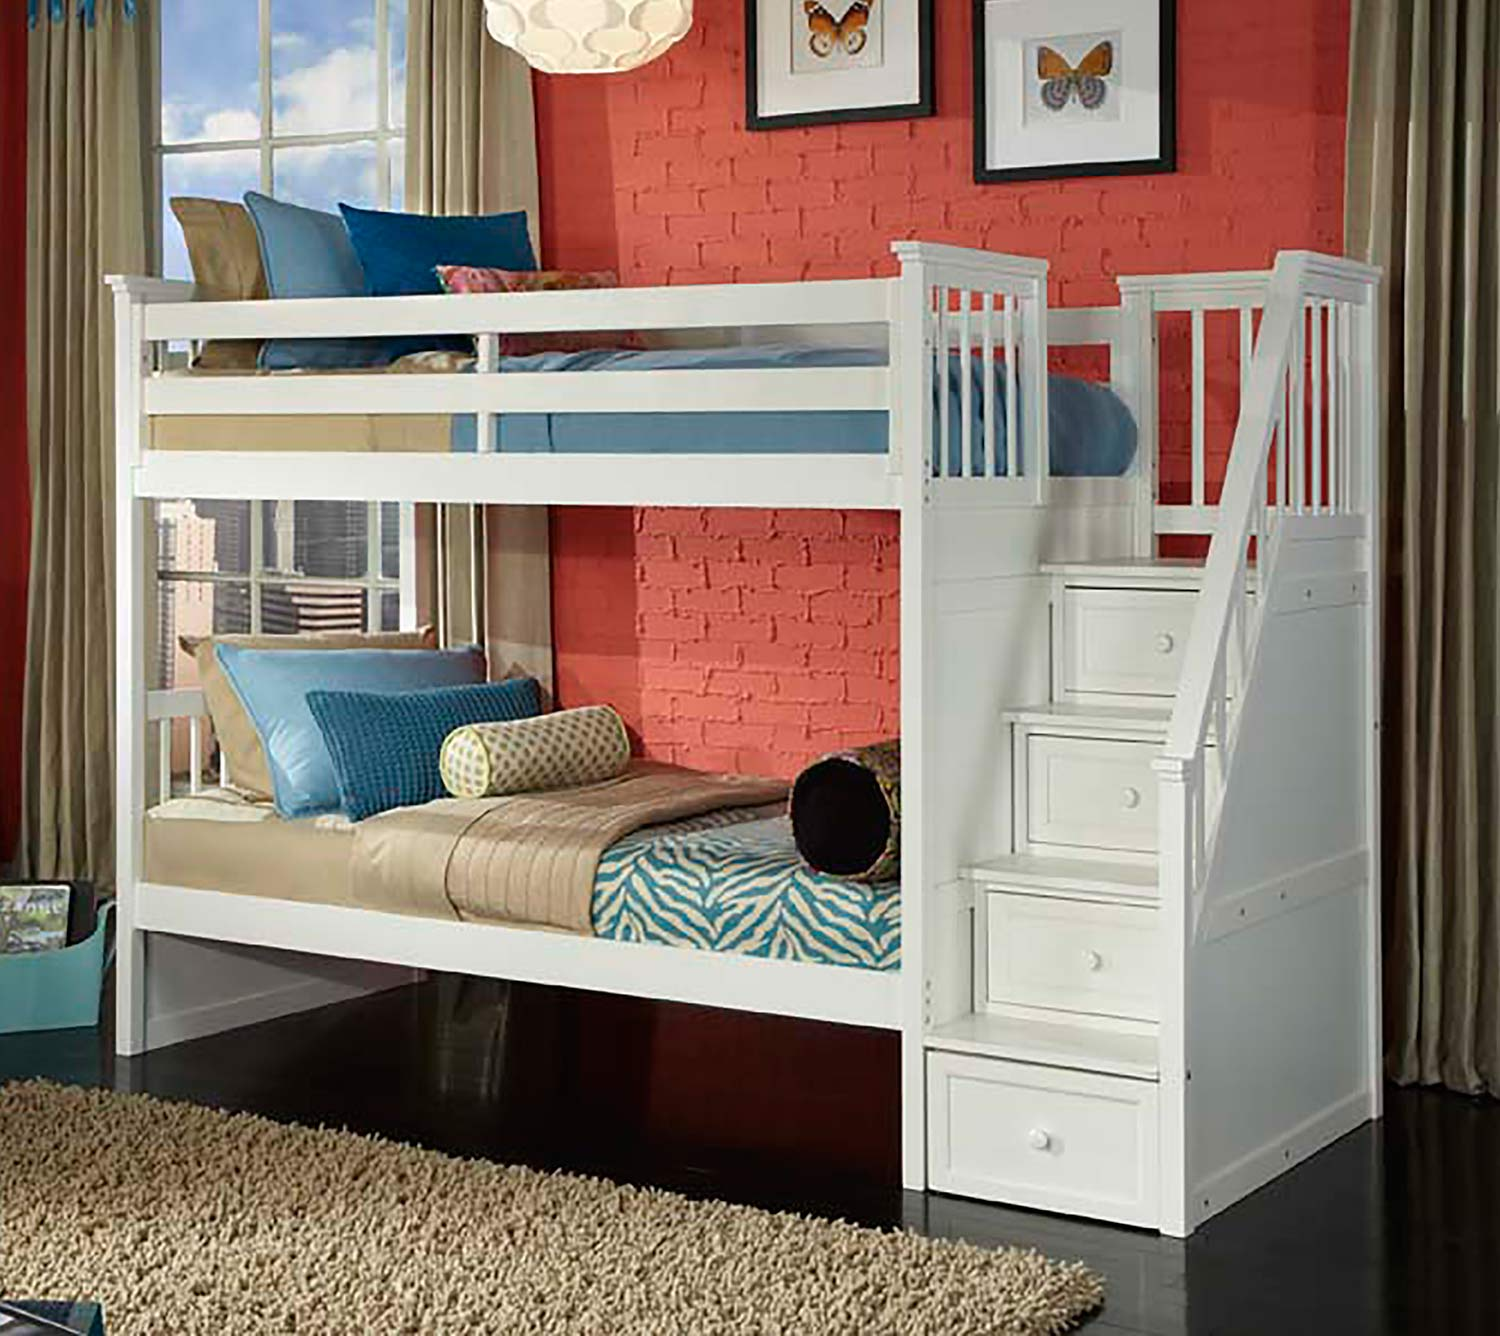 NE Kids School House Stair Bunk Bed - White Finish